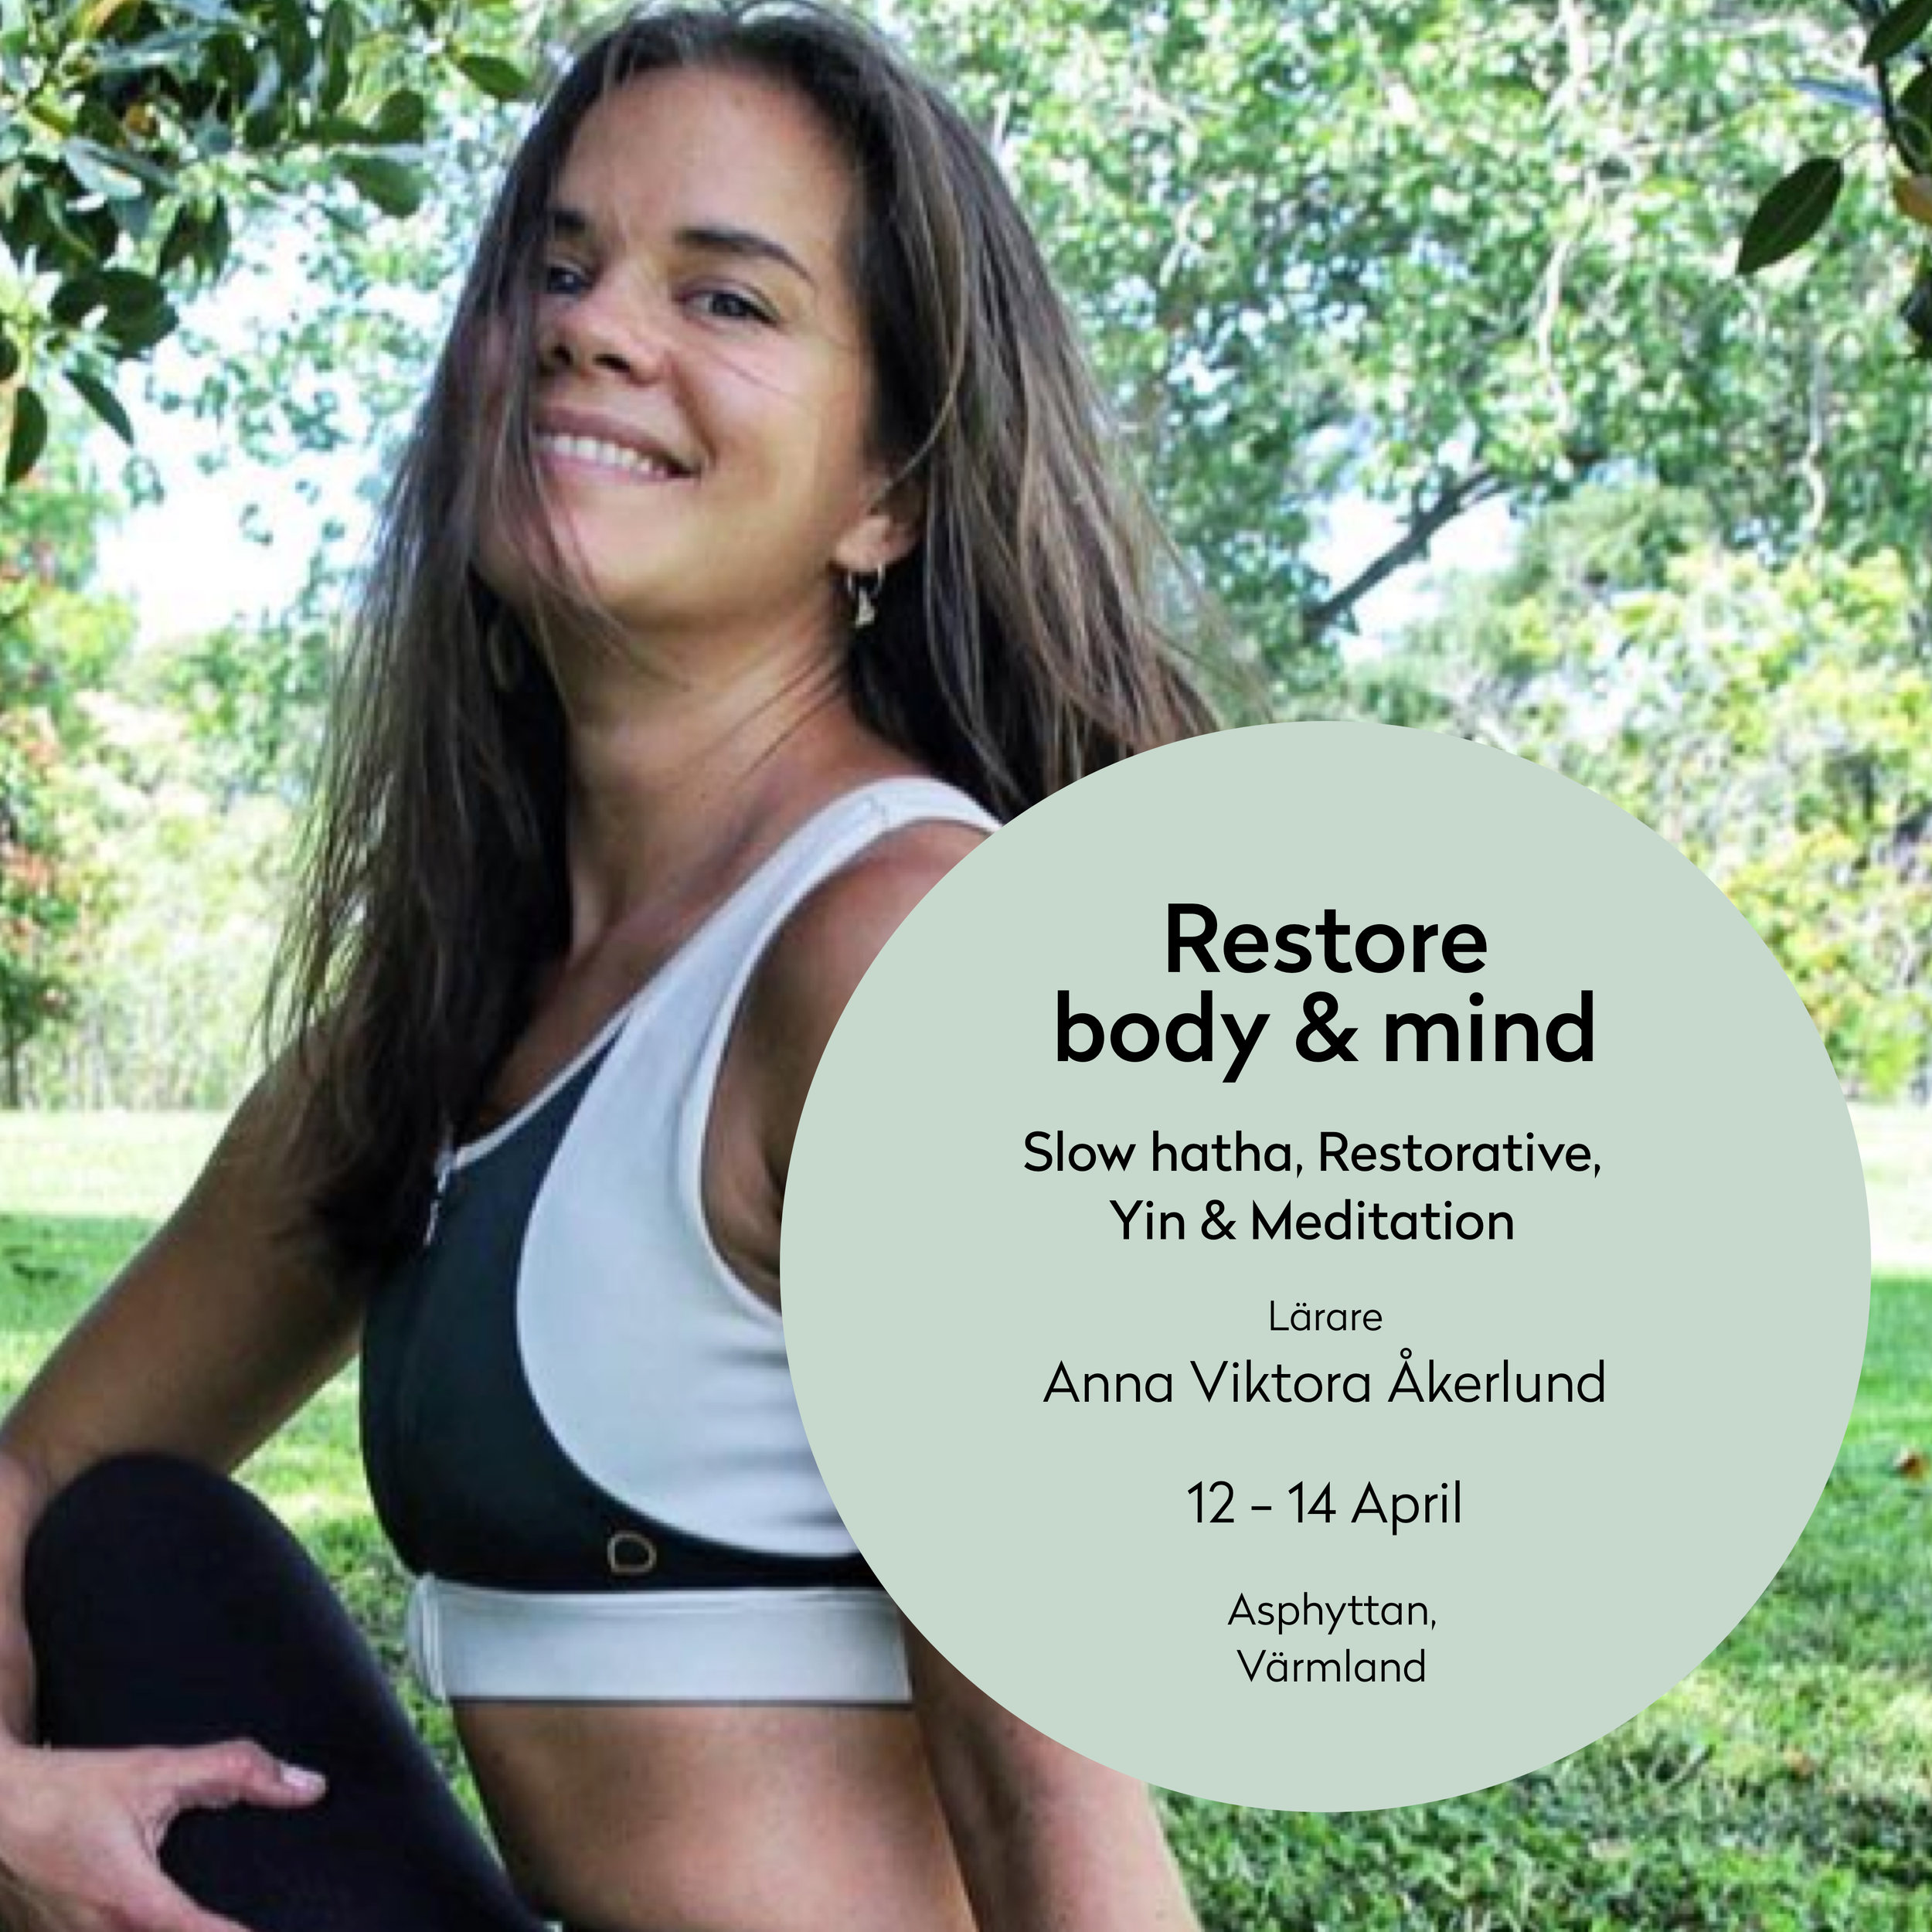 Restore body & soul - Welcome to a healing weekend (12-14 April) where you will be guided by the lovley teacher, Anna Viktoria, and experience your connection between your mind, body and soul through slow hatha, restorative, yin and meditation.Find more info here (in Swedish)